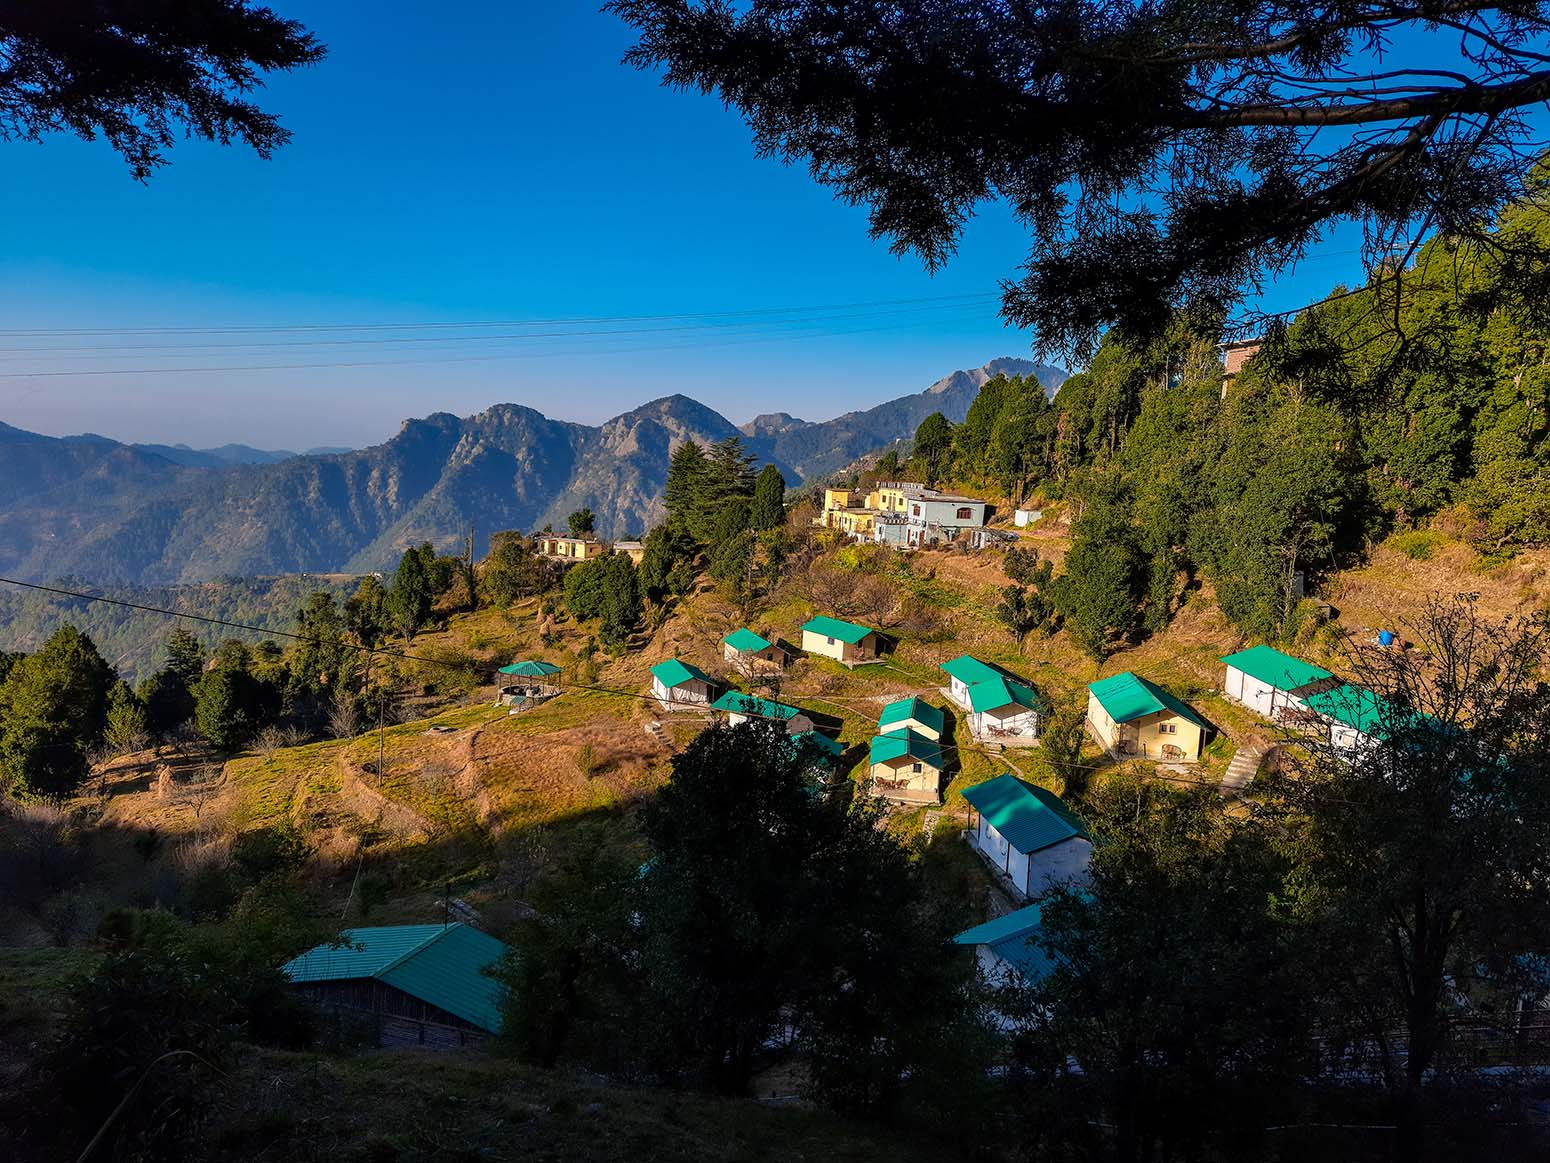 Kanatal-An Idyllic Place for Workation in 2021